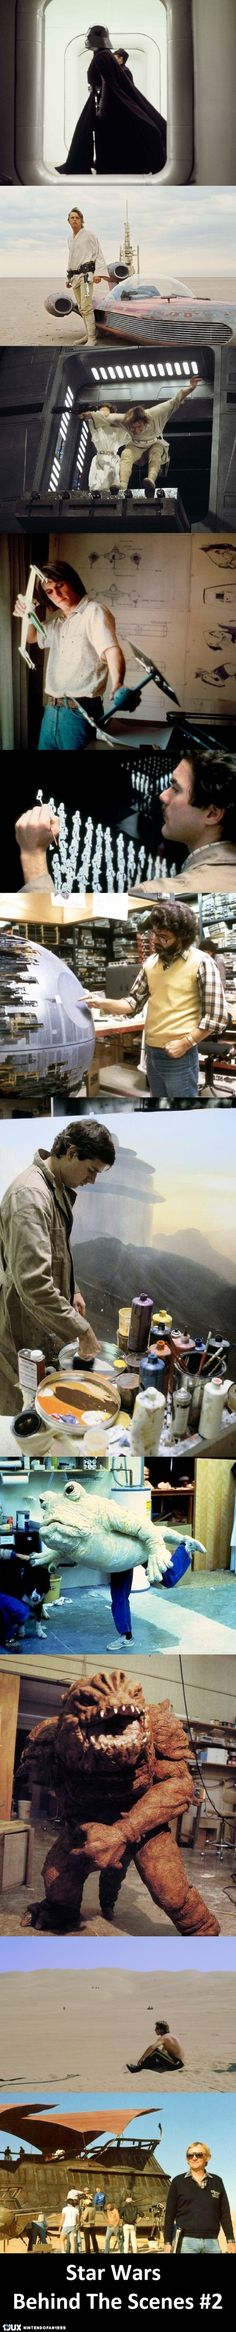 Star Wars Behind The Scenes #2